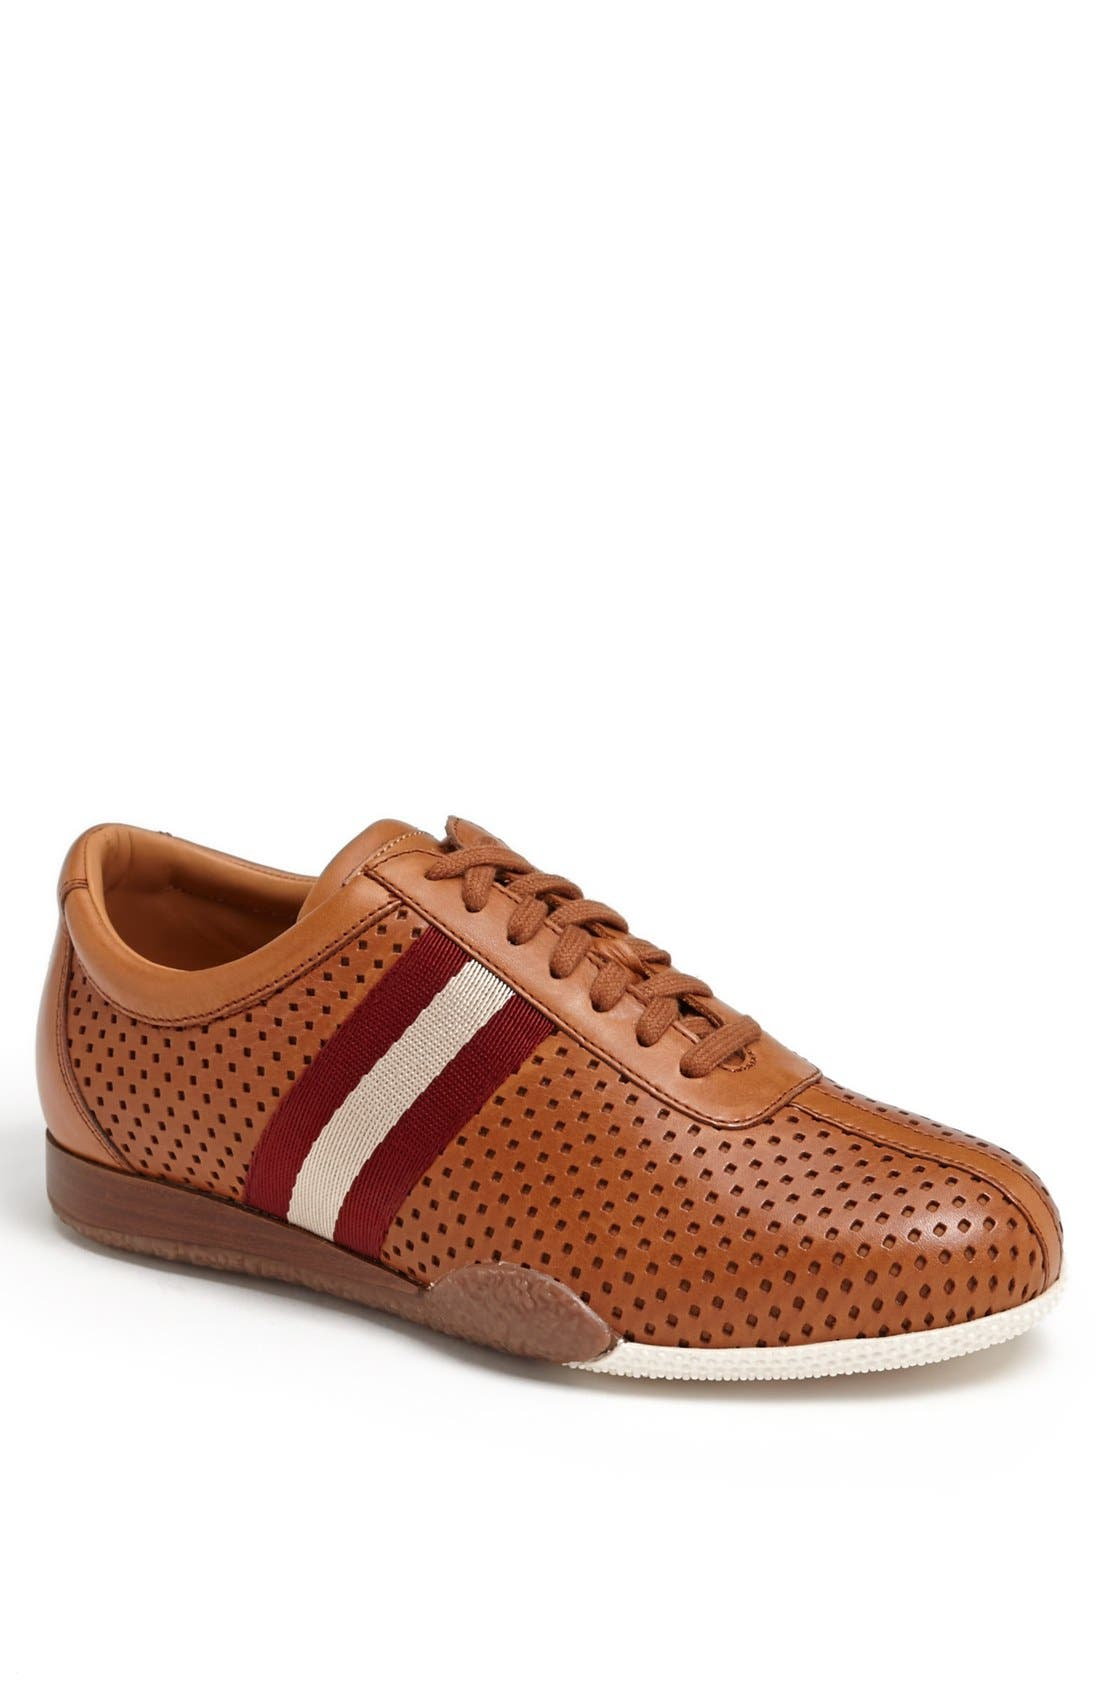 Alternate Image 1 Selected - Bally 'Freenew' Perforated Leather Sneaker